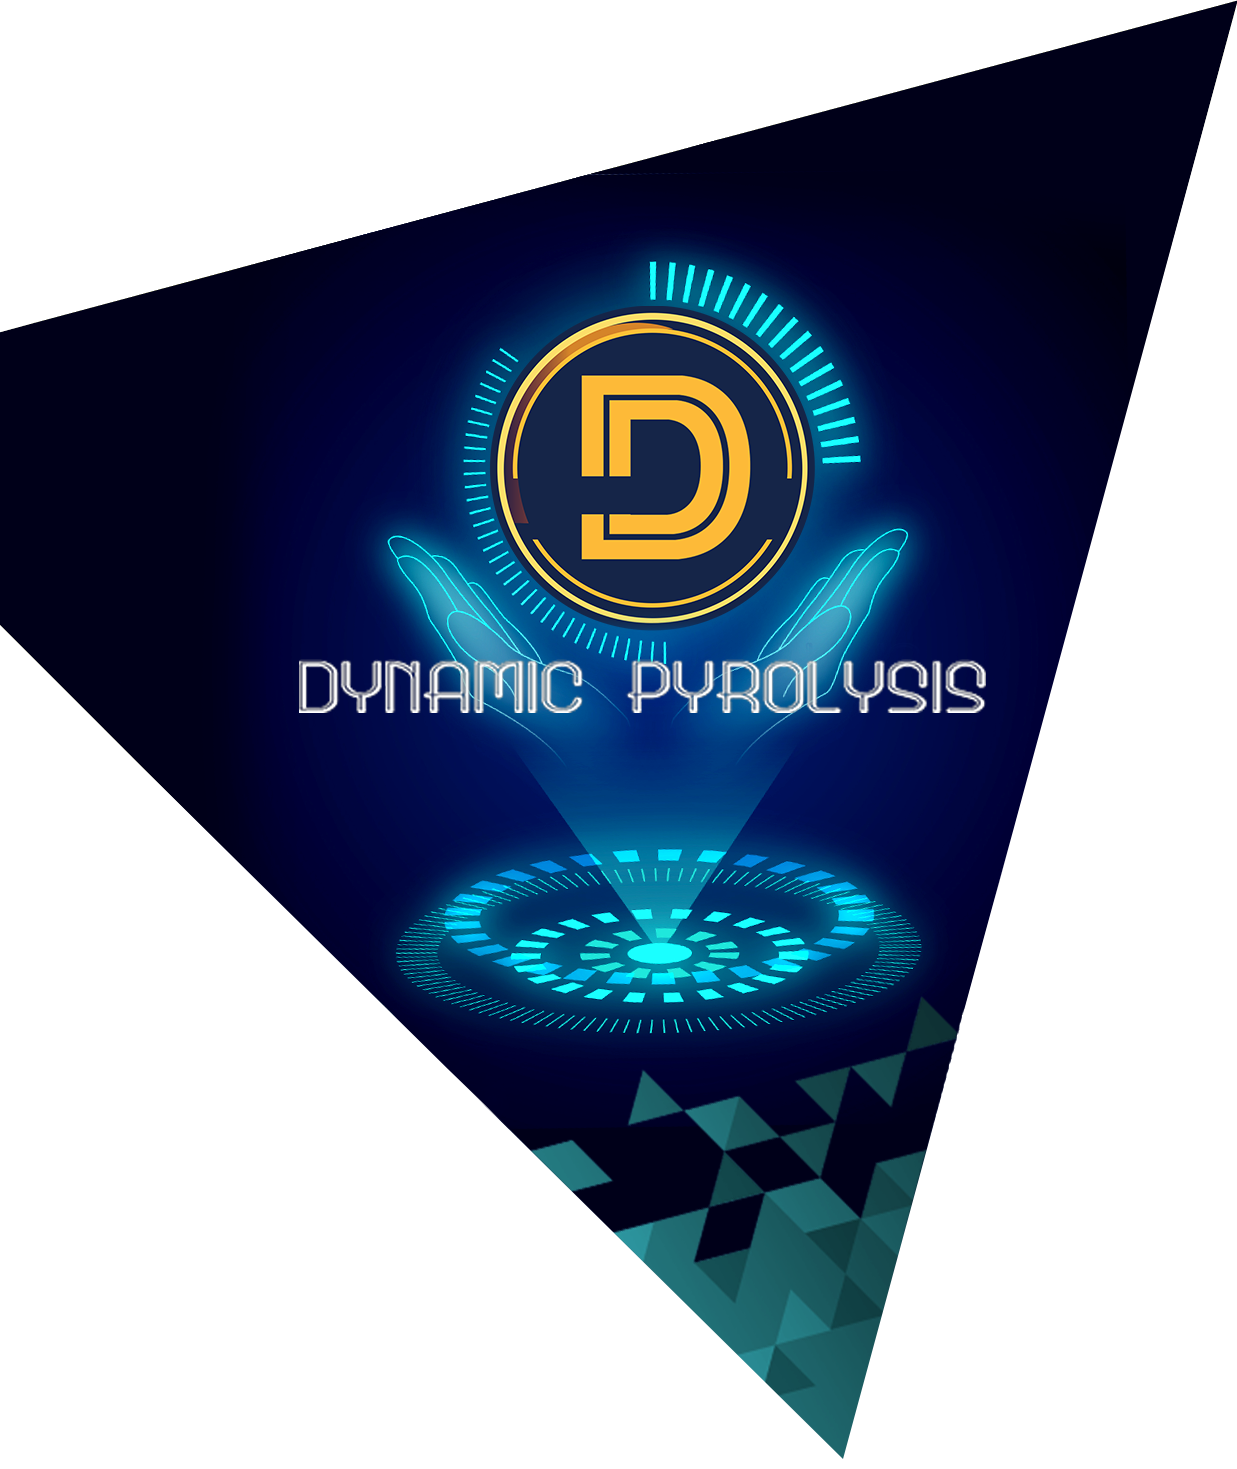 https://www.dynamicpyrolysis.com/wp-content/uploads/2020/04/dynamic-pyrolysis-3-2.png